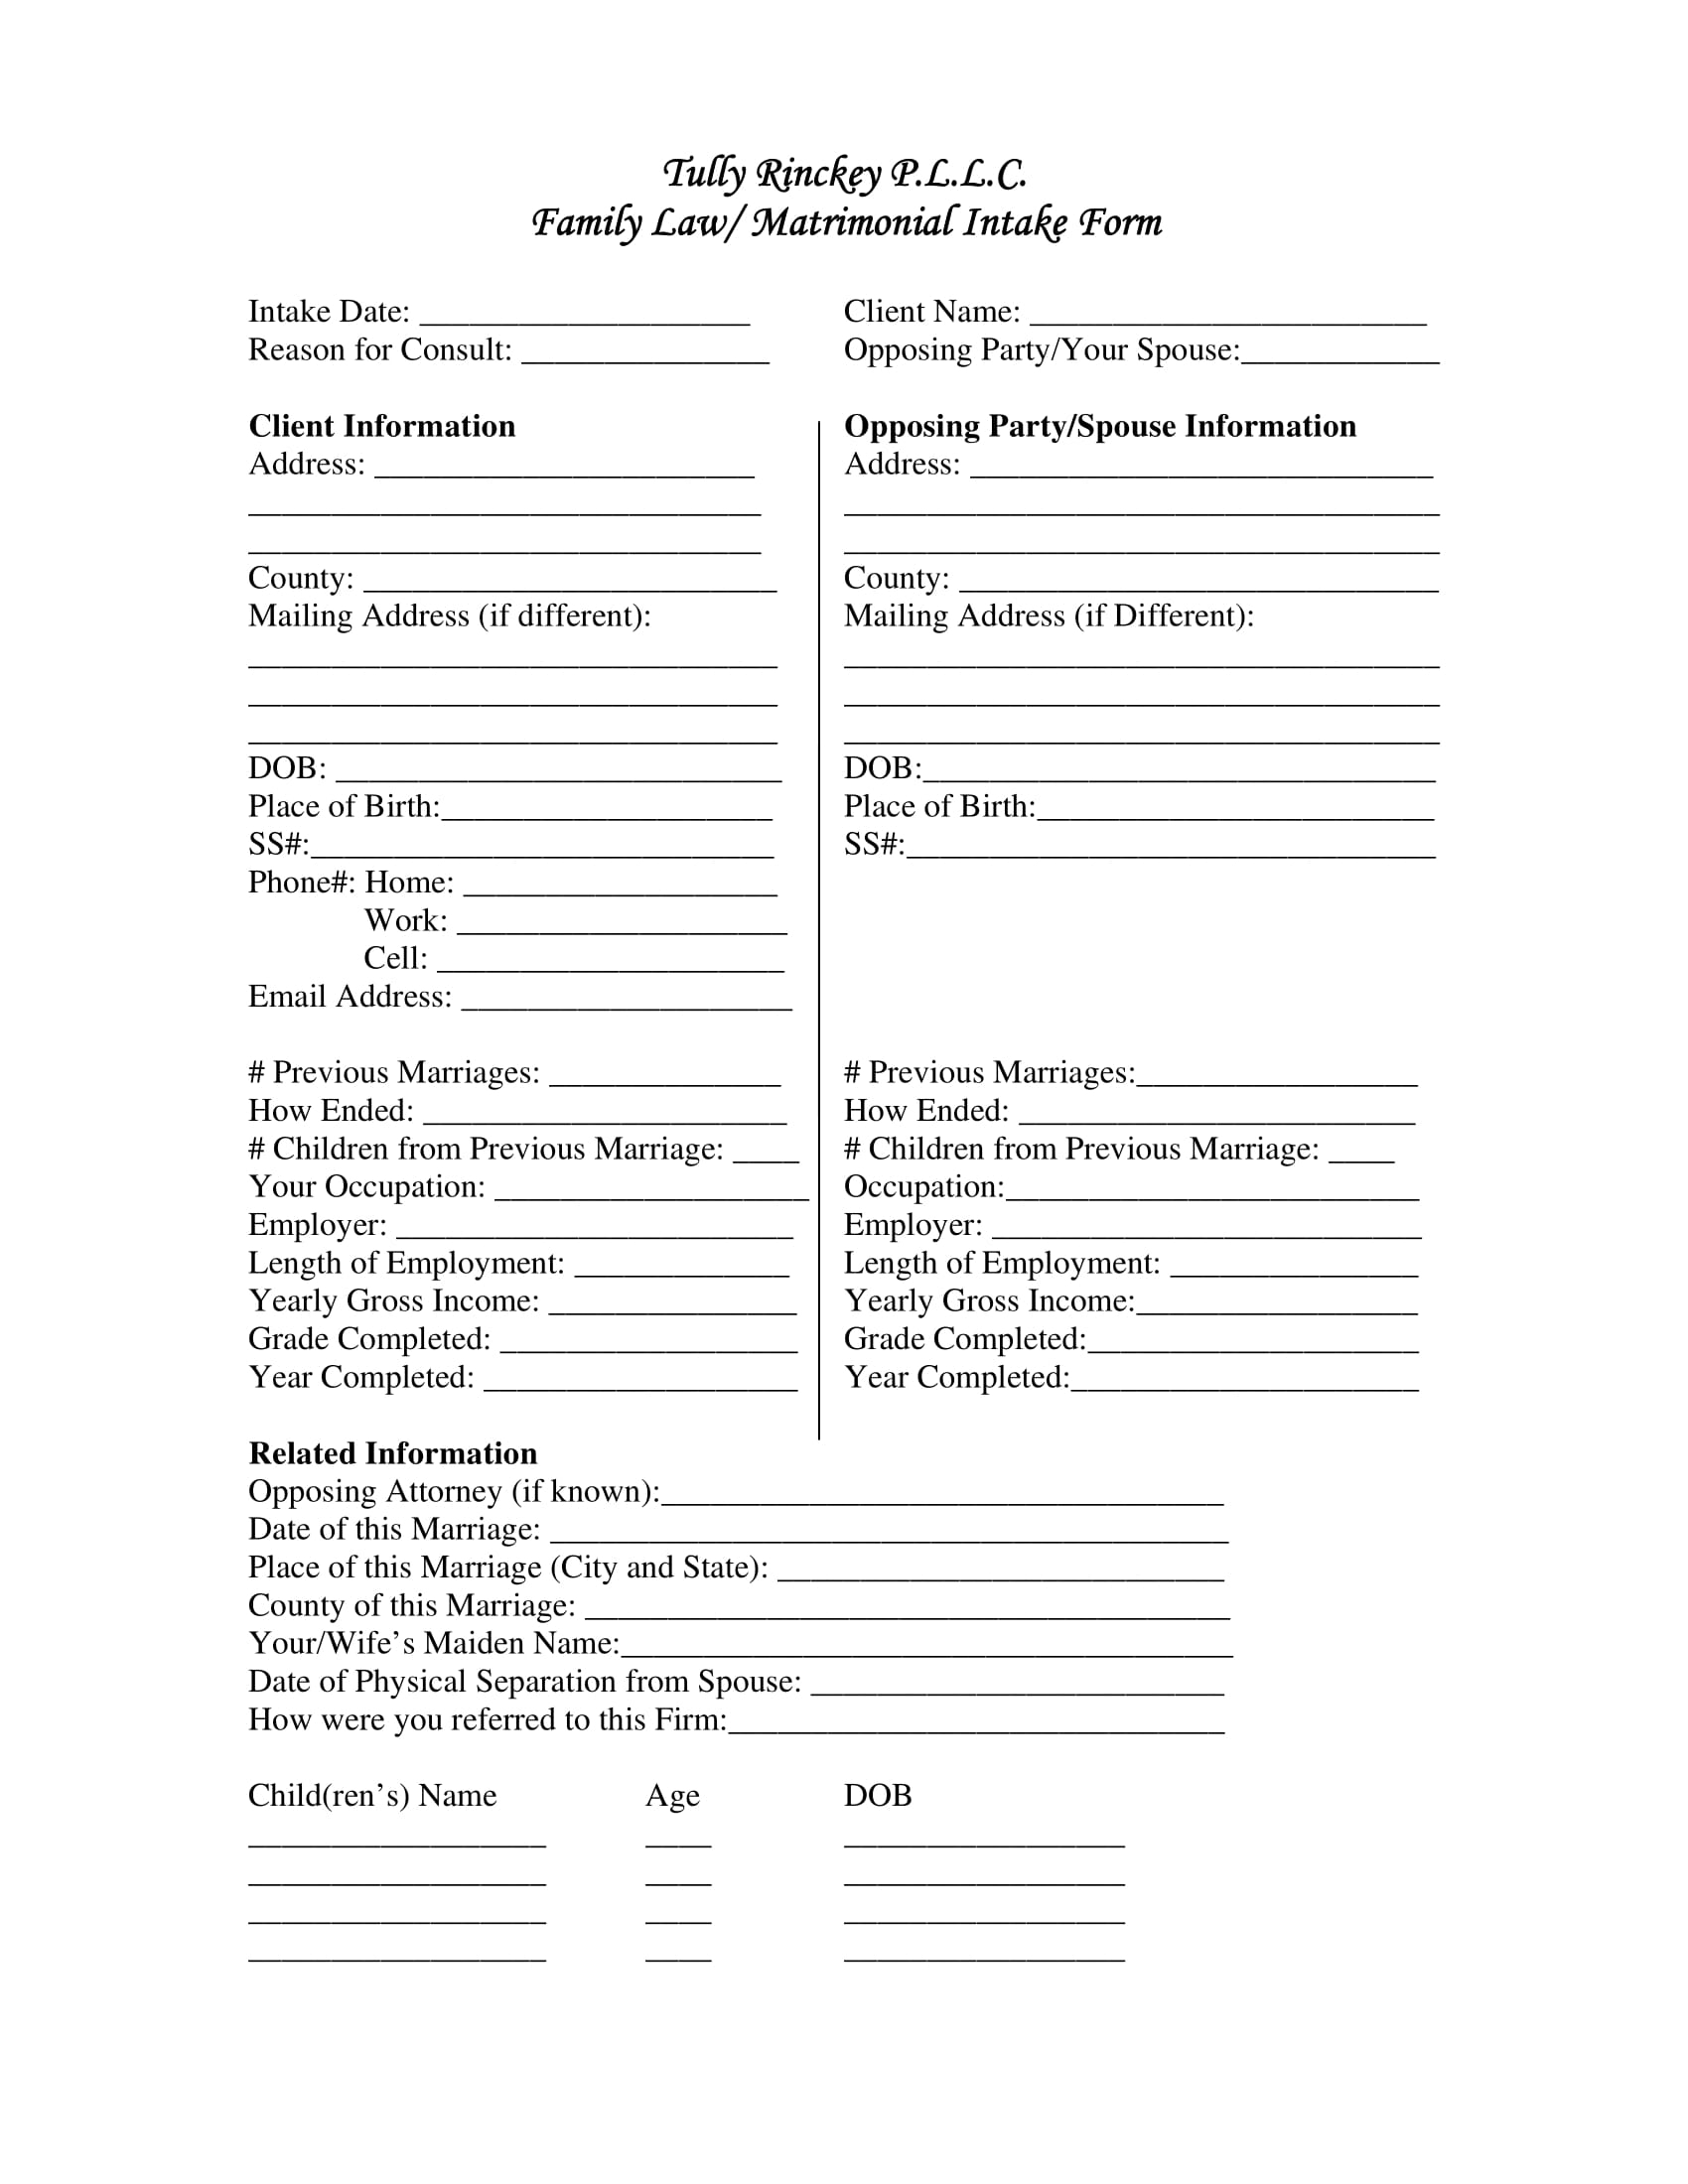 family law matrimonial intake form 1